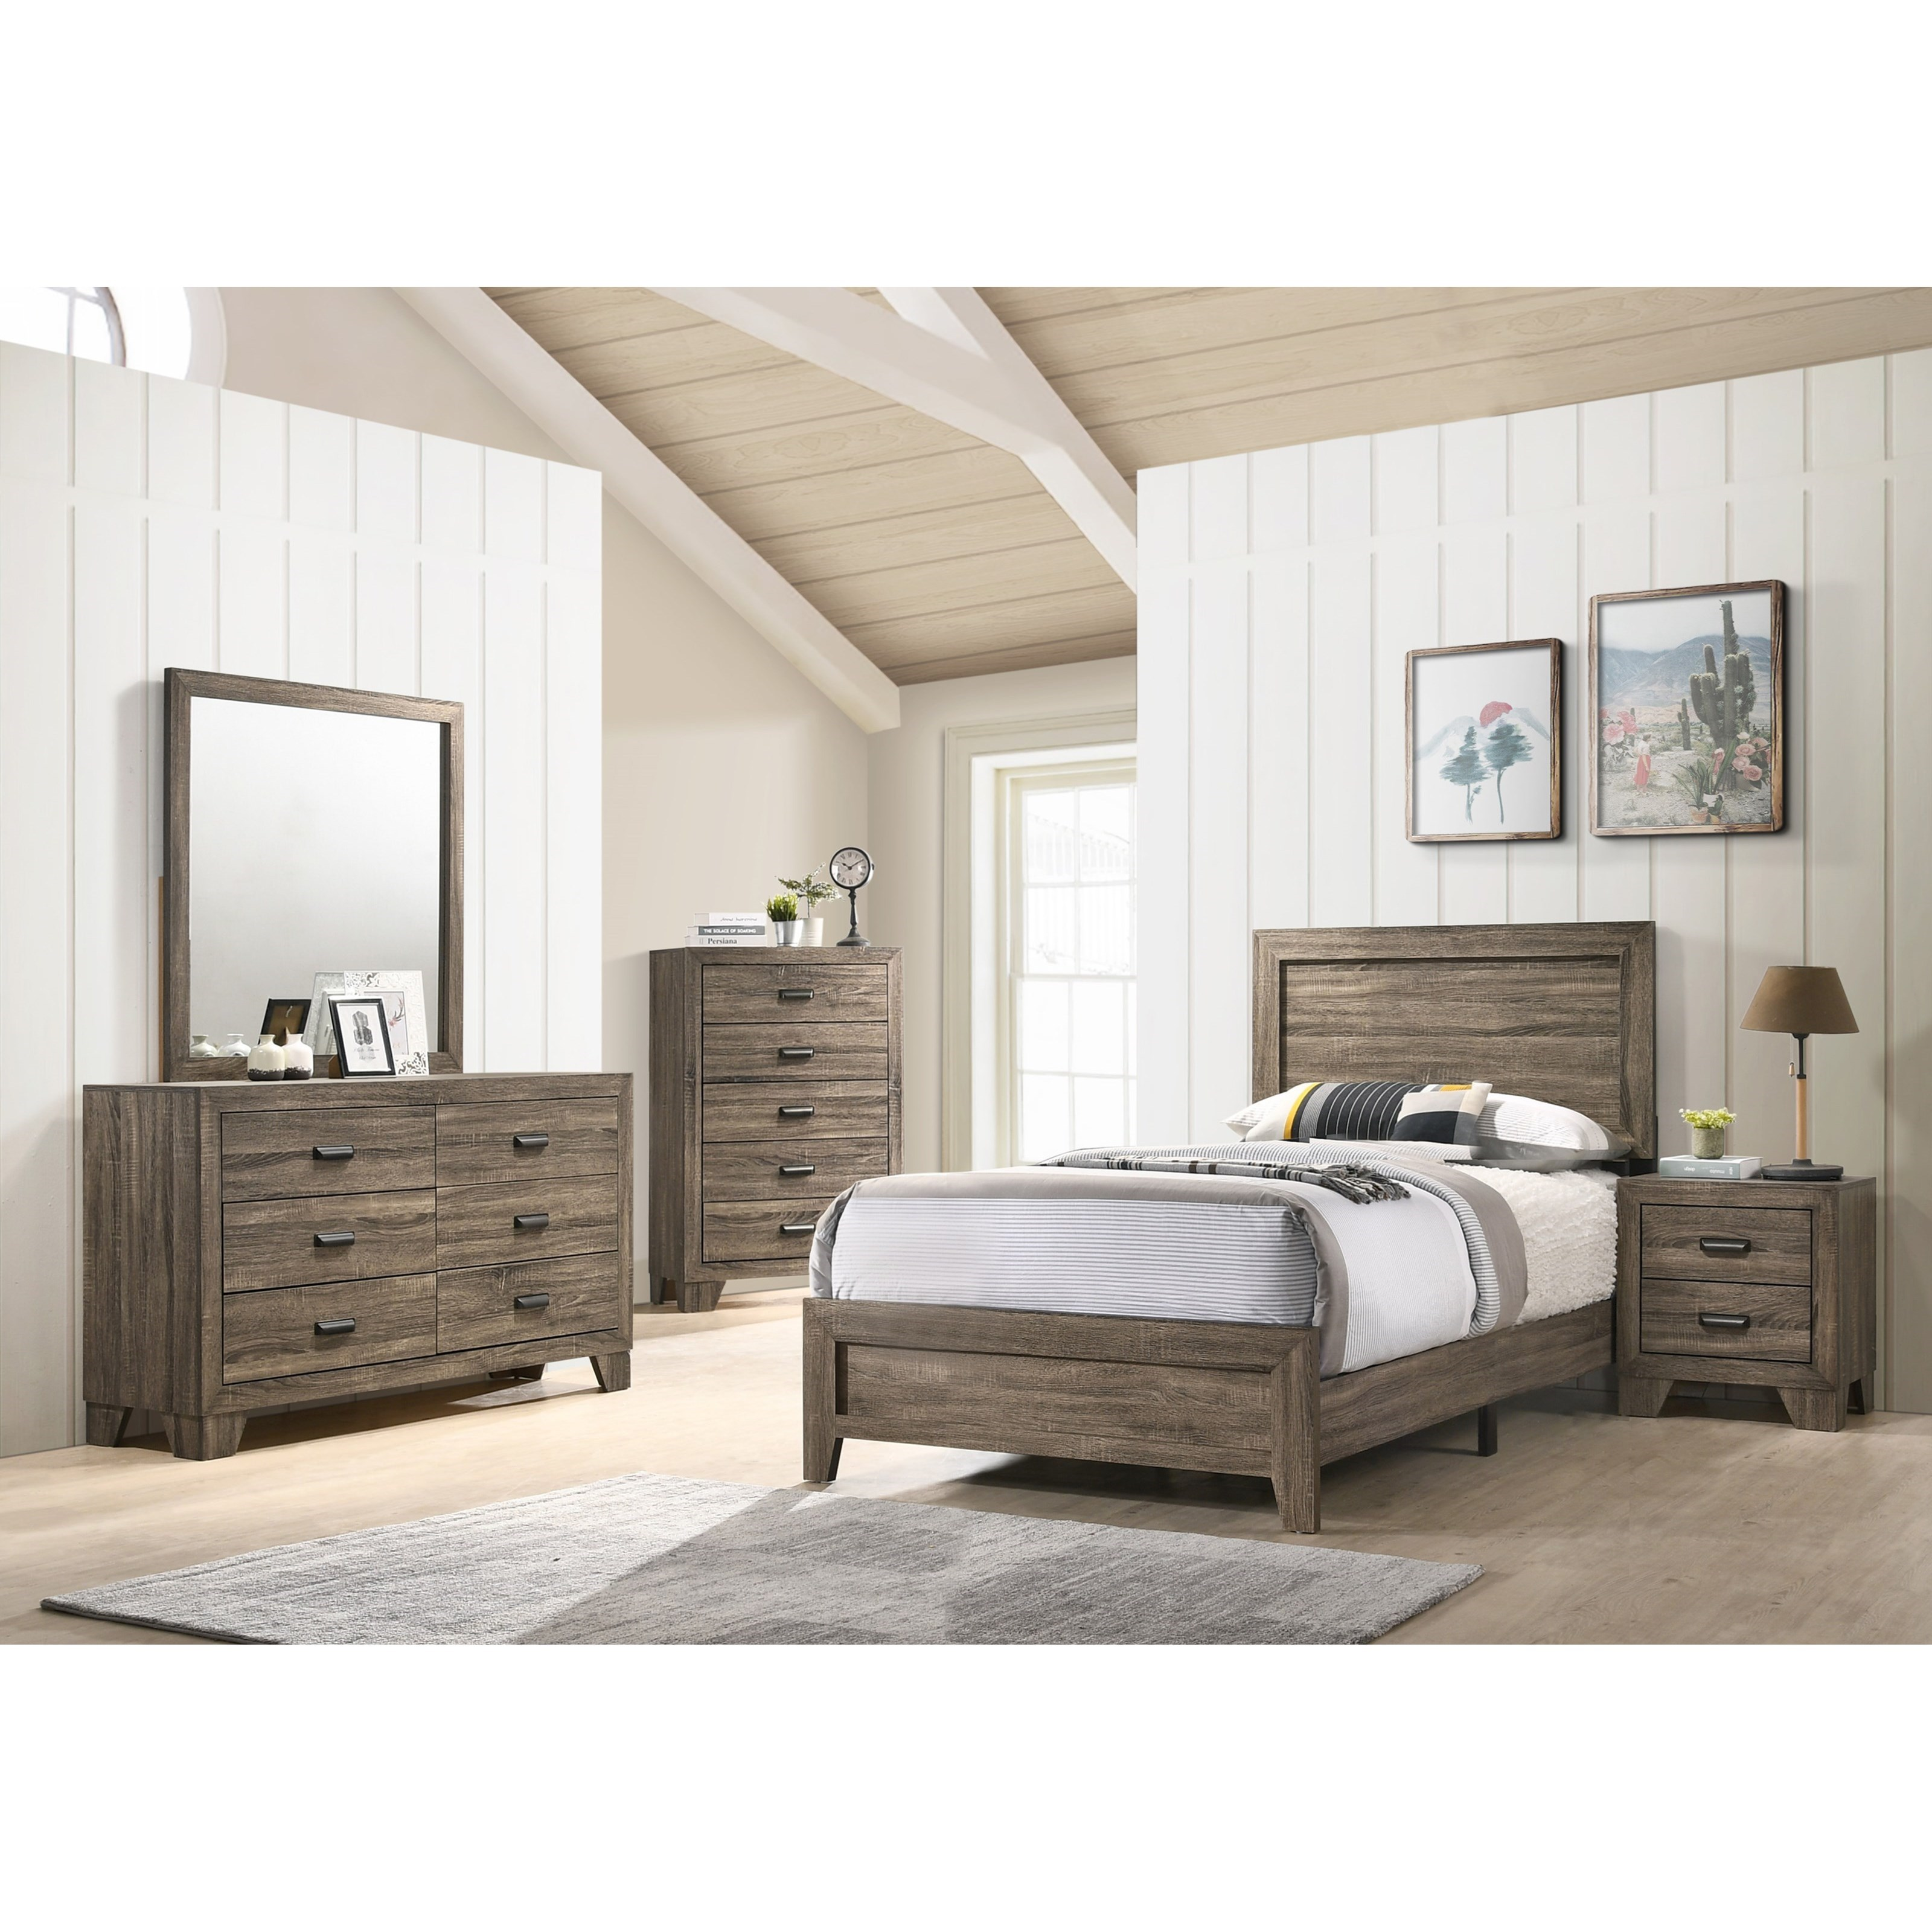 Millie Twin Bedroom Group by Crown Mark at Northeast Factory Direct